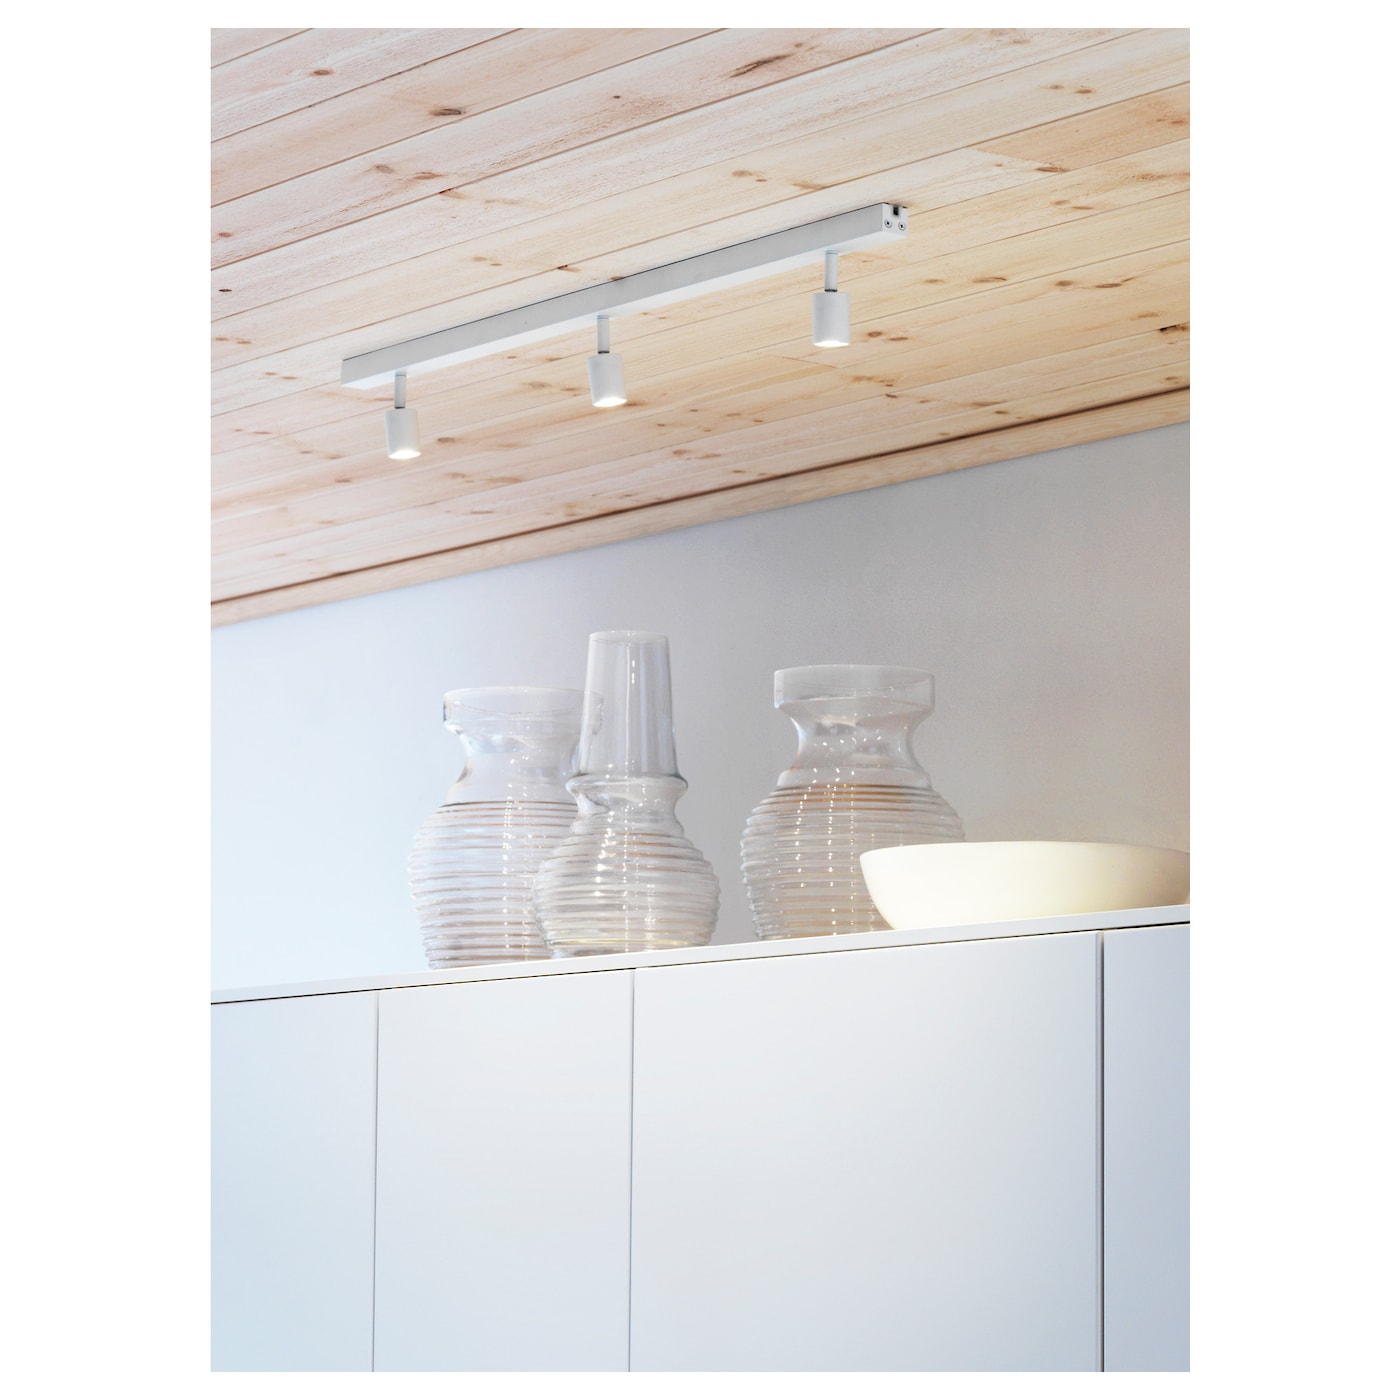 b ve rail pour plafond led 3spots blanc ikea. Black Bedroom Furniture Sets. Home Design Ideas